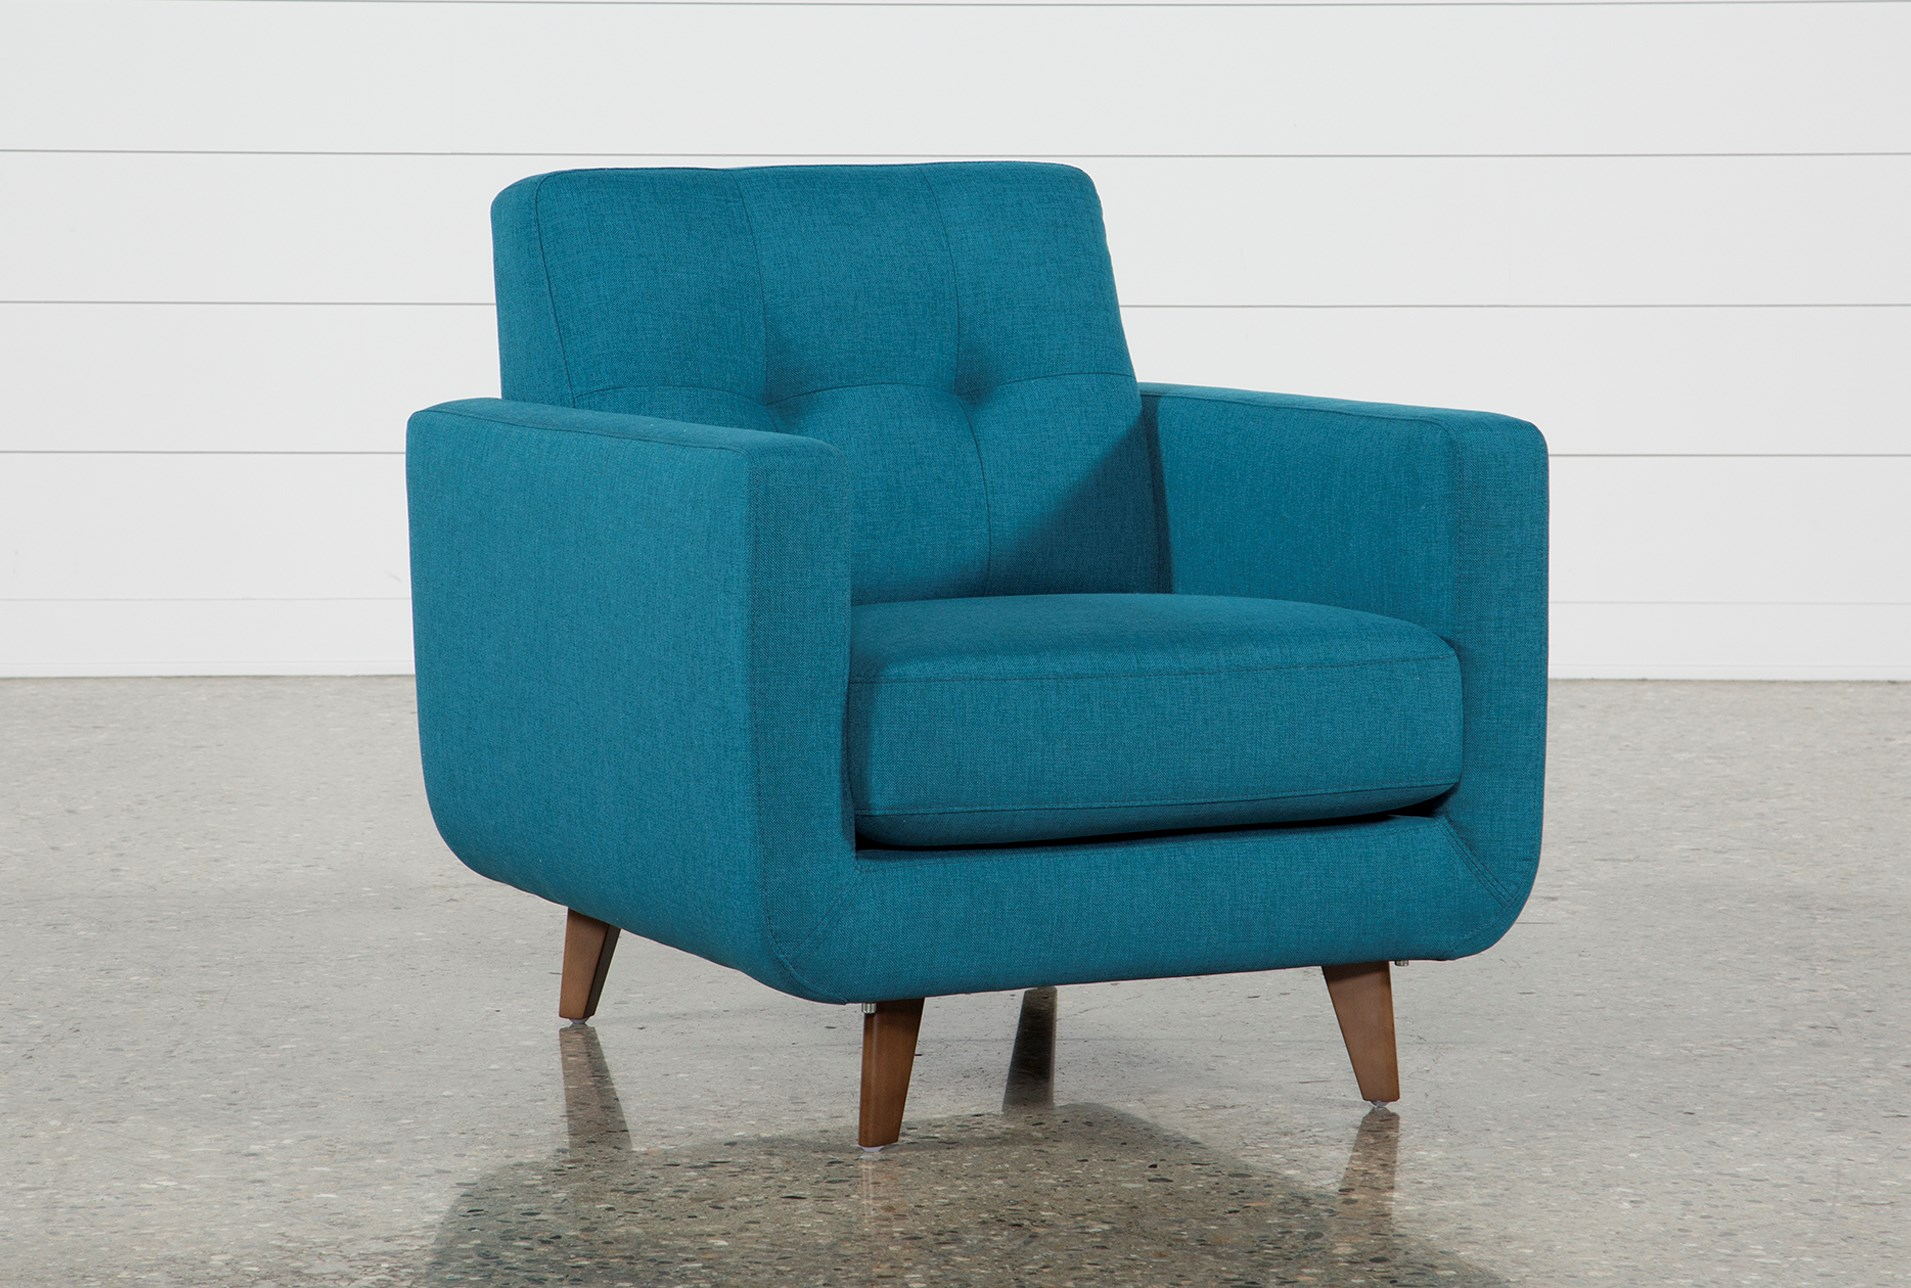 Sofa Chairs for Your Home & Office | Living Spaces